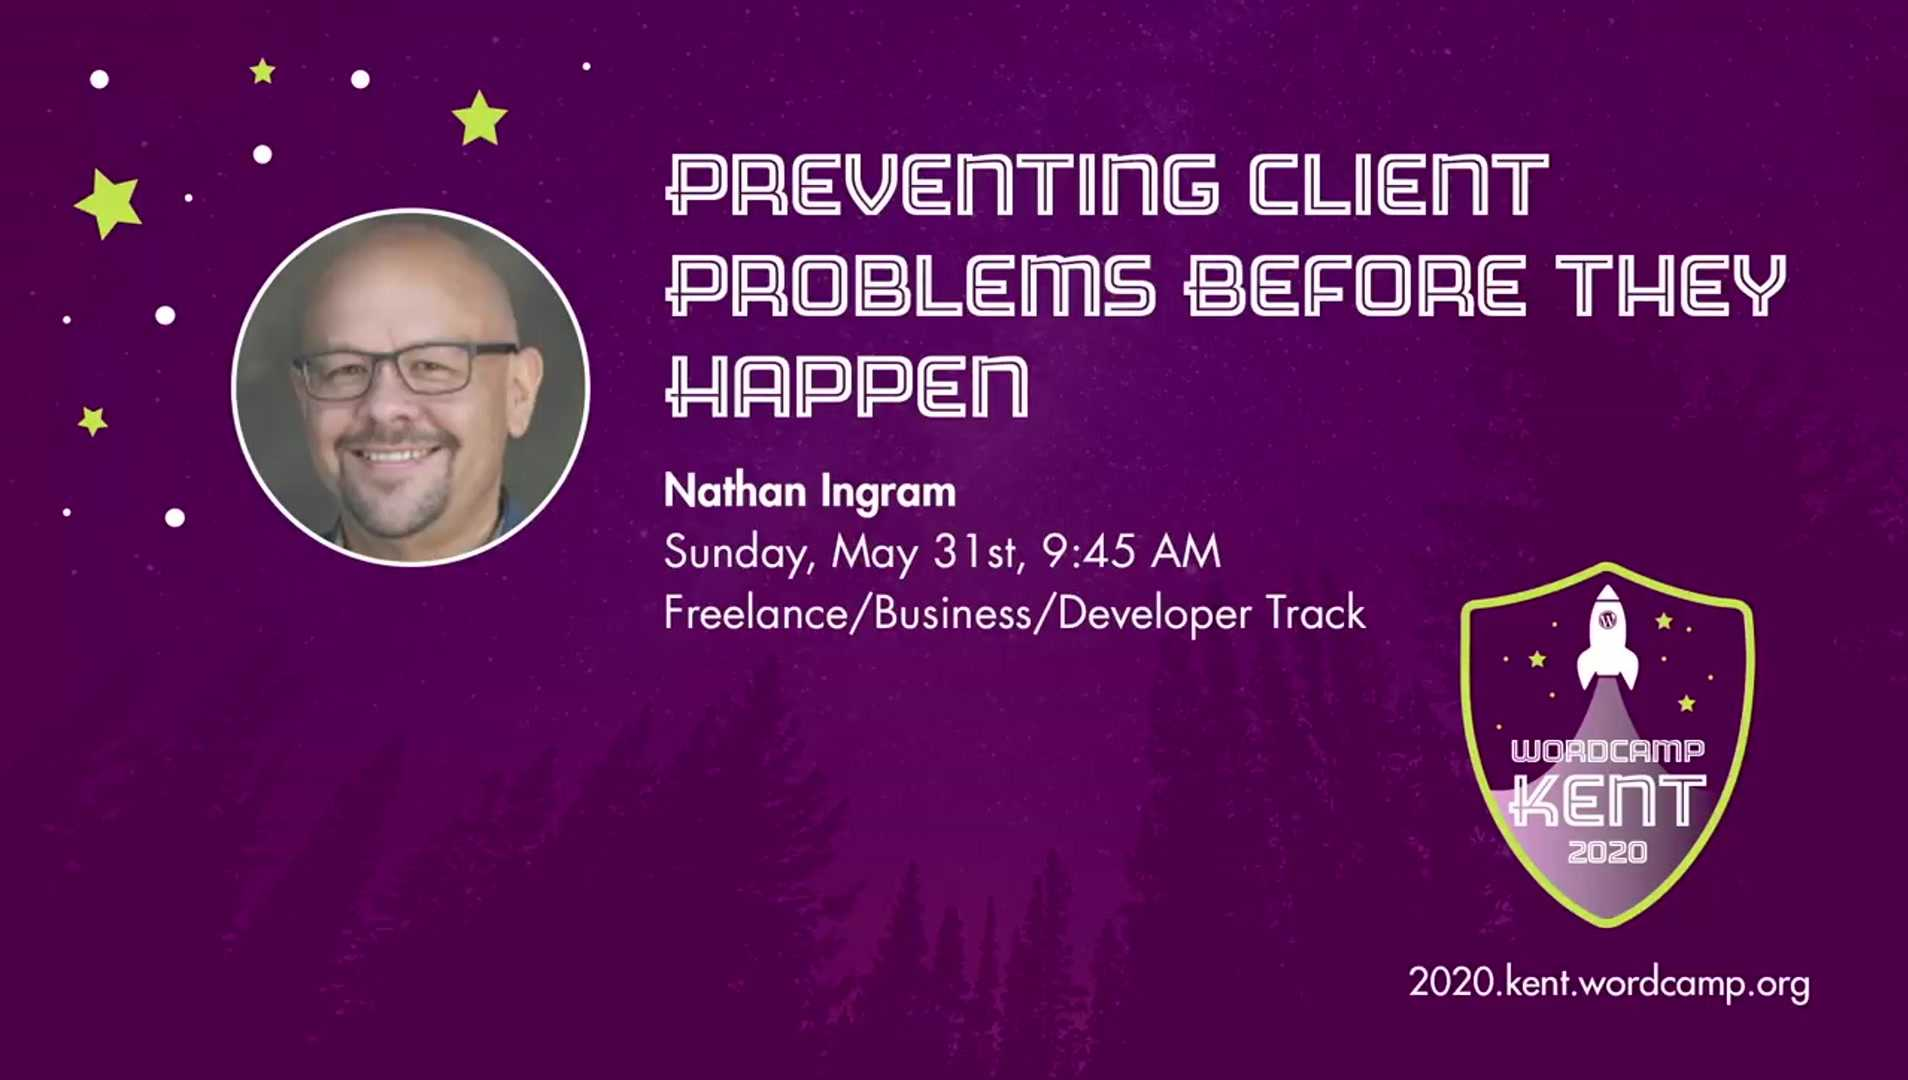 Nathan Ingram: Preventing Client Problems Before They Happen